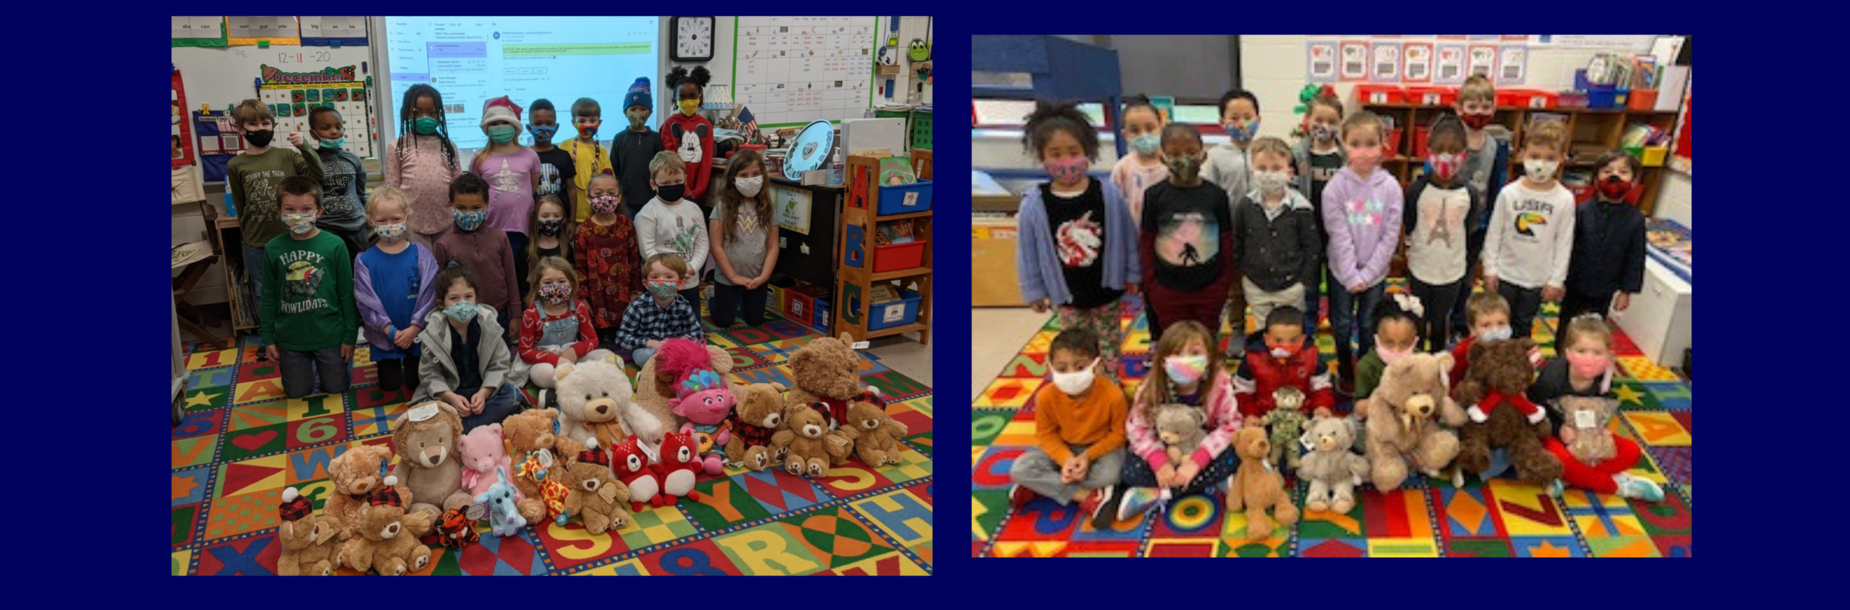 students holding stuffed animals smiling